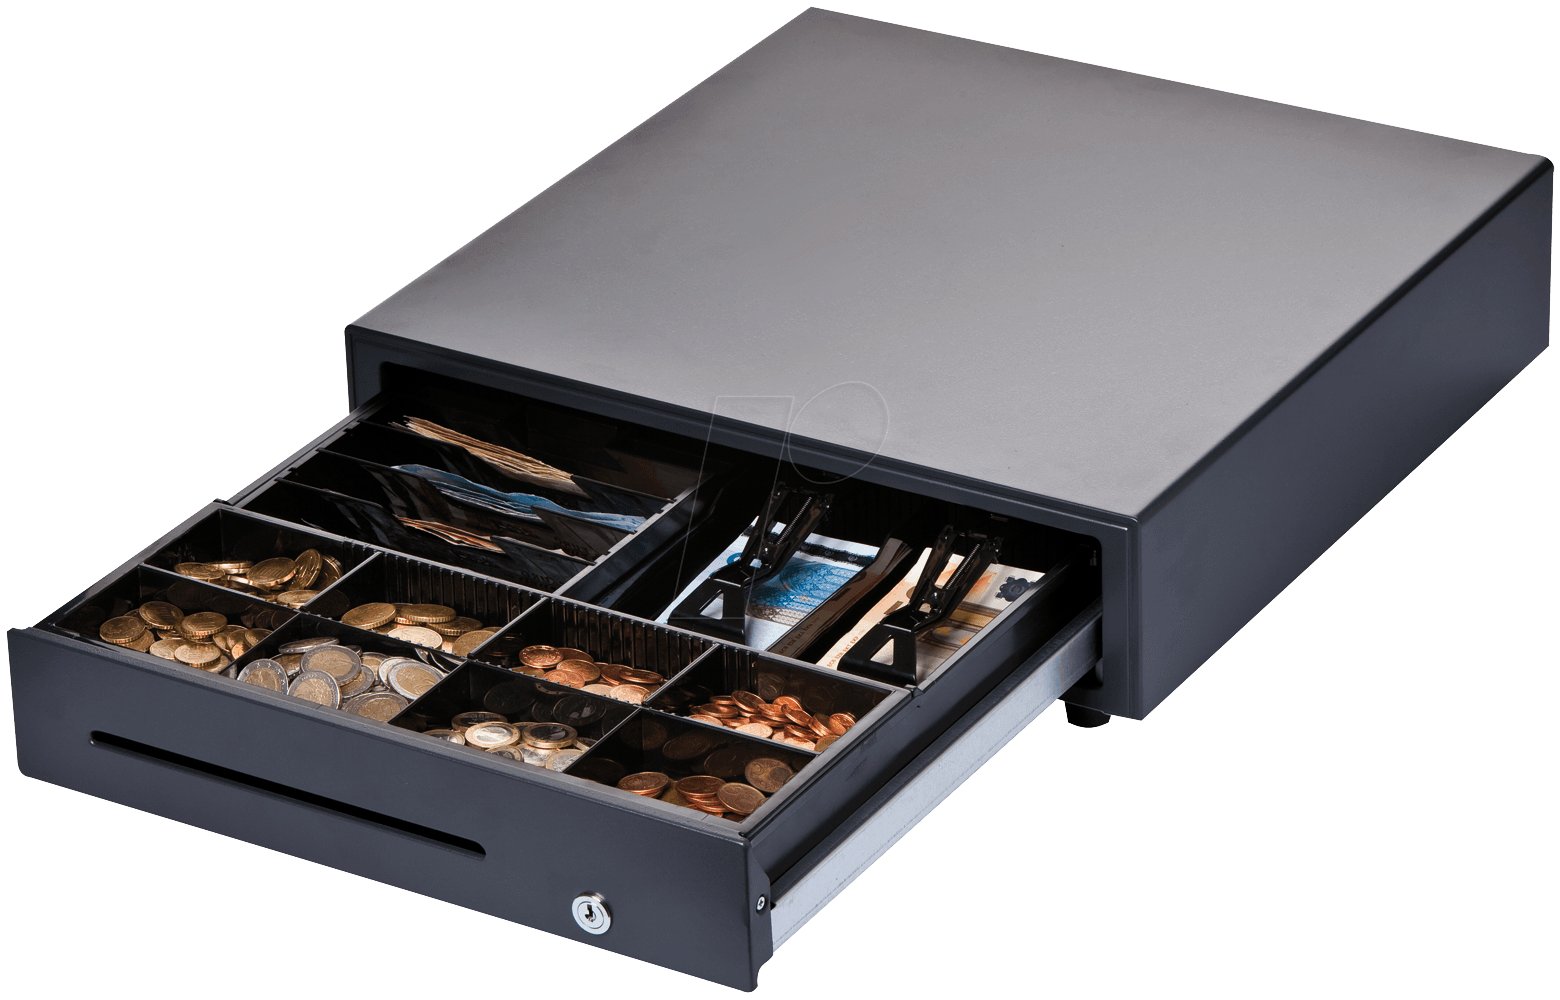 safescan lid store removable hd option top gallery drawer fully drawers standard cash en duty tray with fliptop flip lockable eur